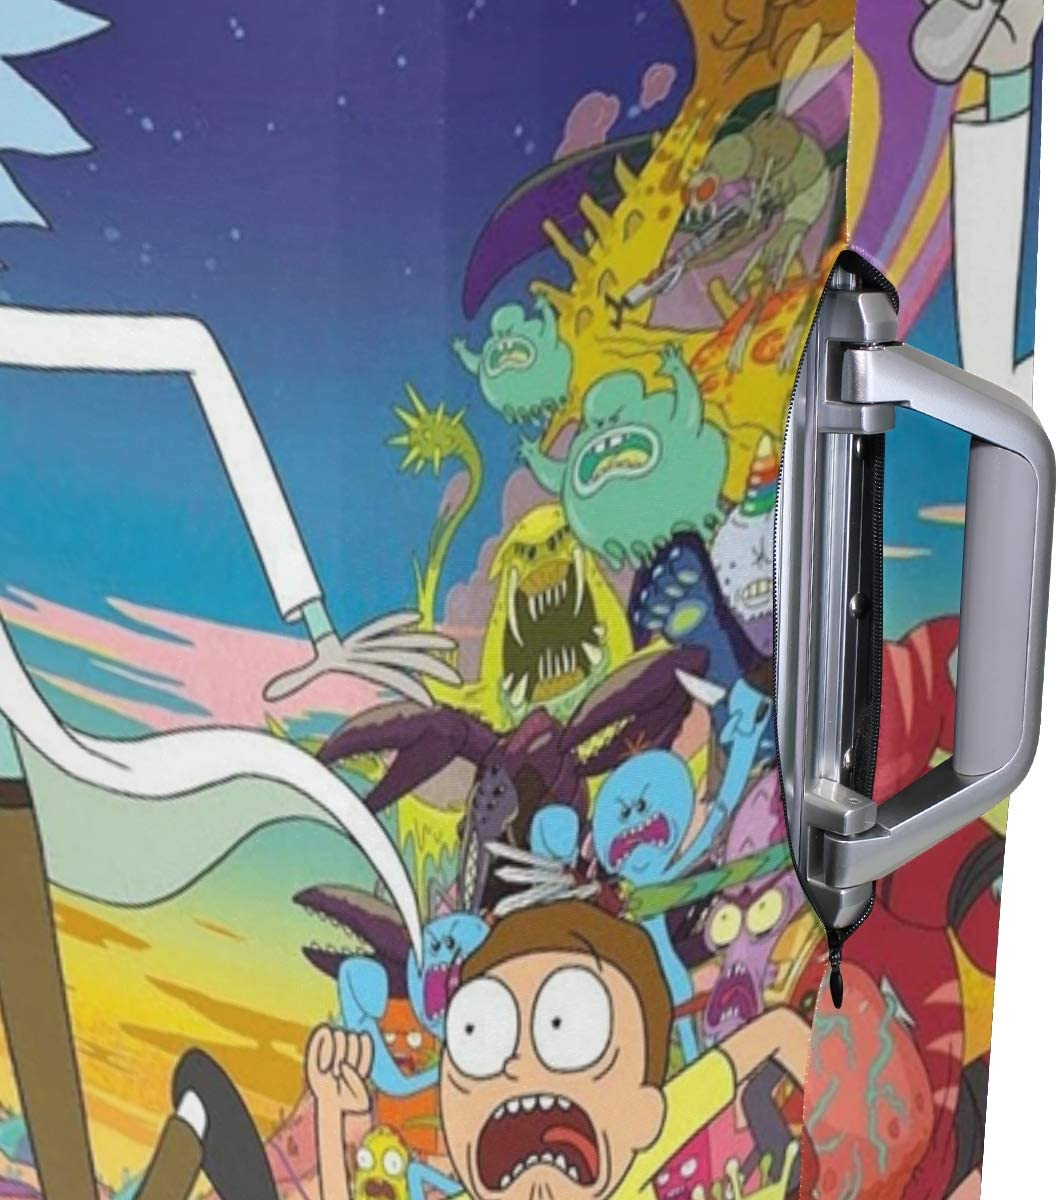 Beautiful Rick With Morty Cartoon Travel Luggage Cover Suitcase Protector Fits 26-28 Inch Washable Baggage Covers